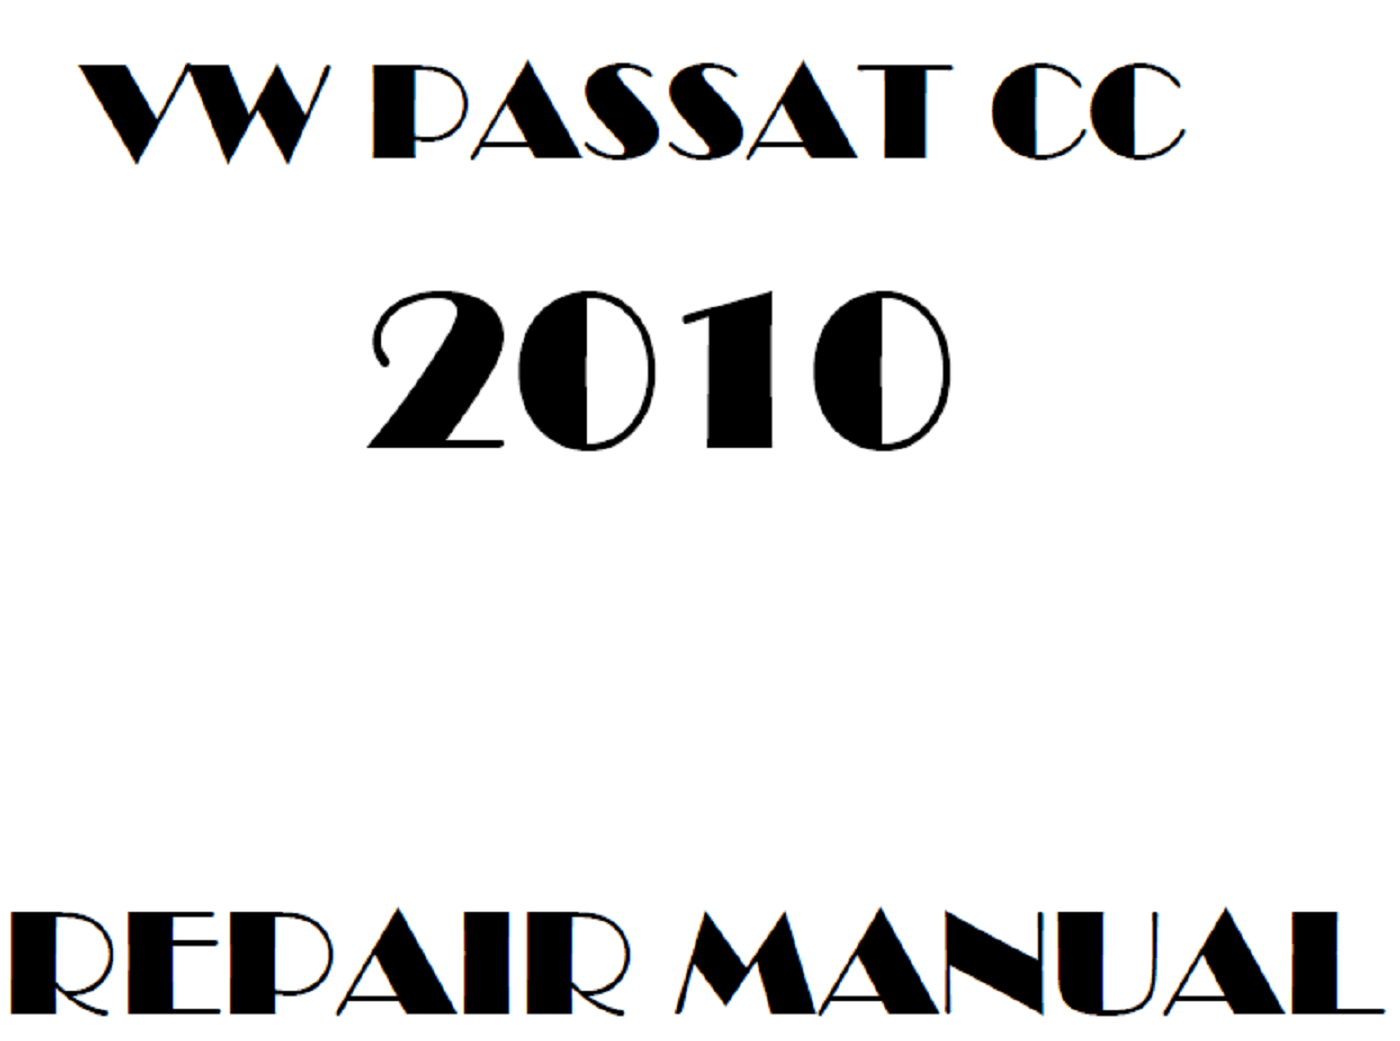 2010 Volkswagen Passat CC repair manual